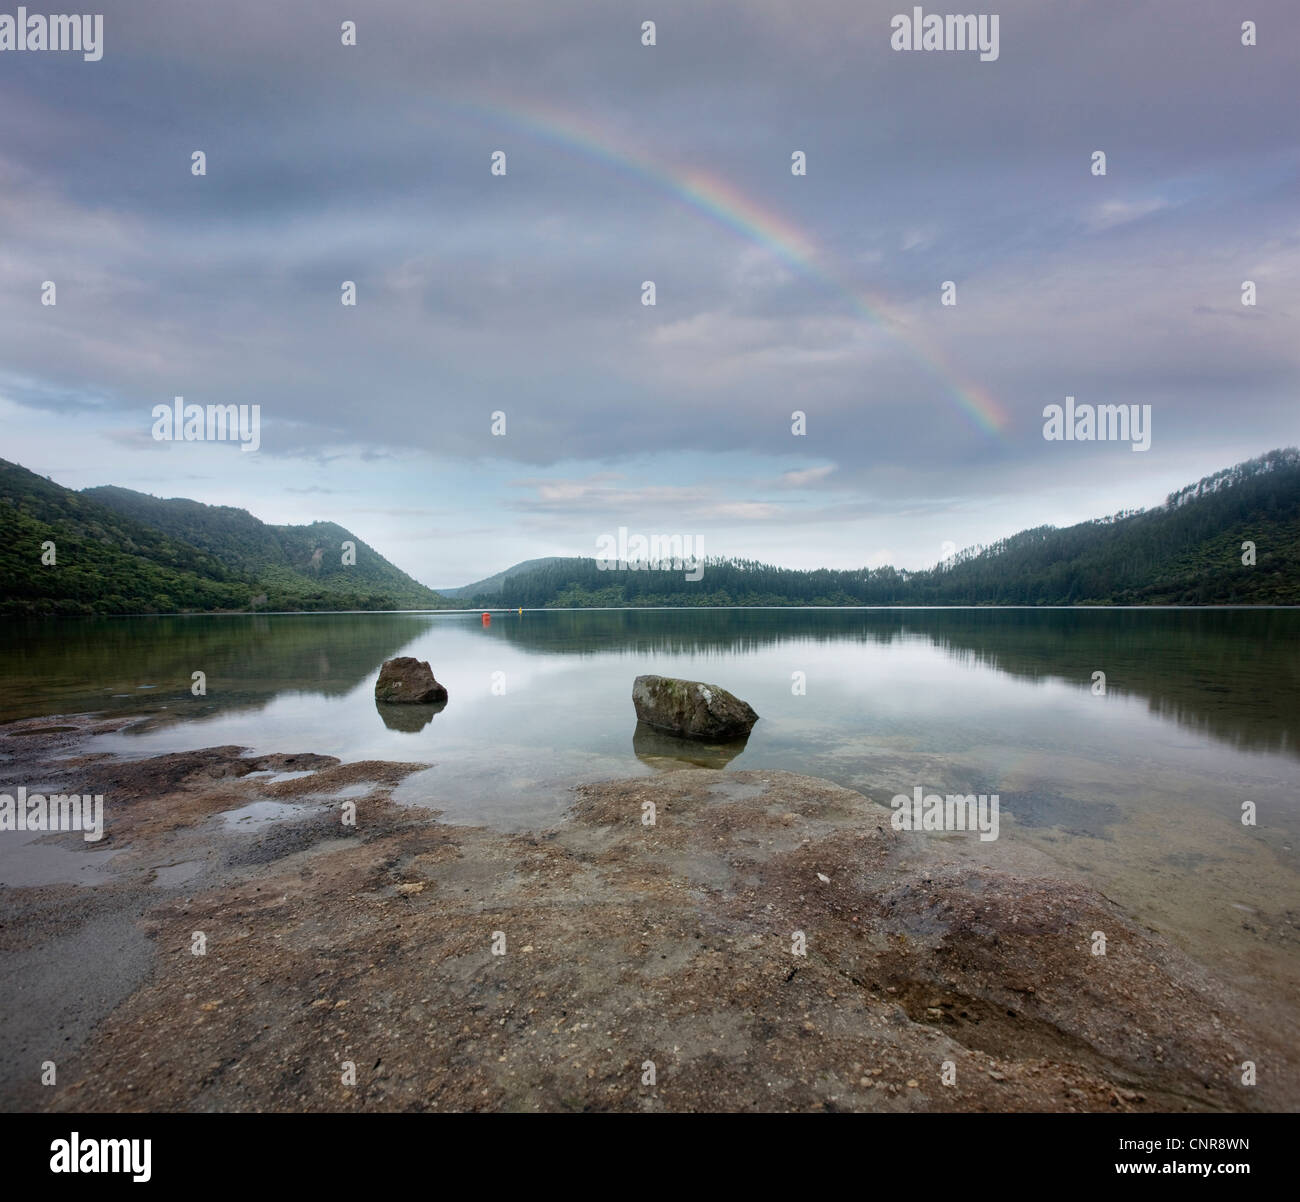 Rainbow stretching over rocky beach - Stock Image